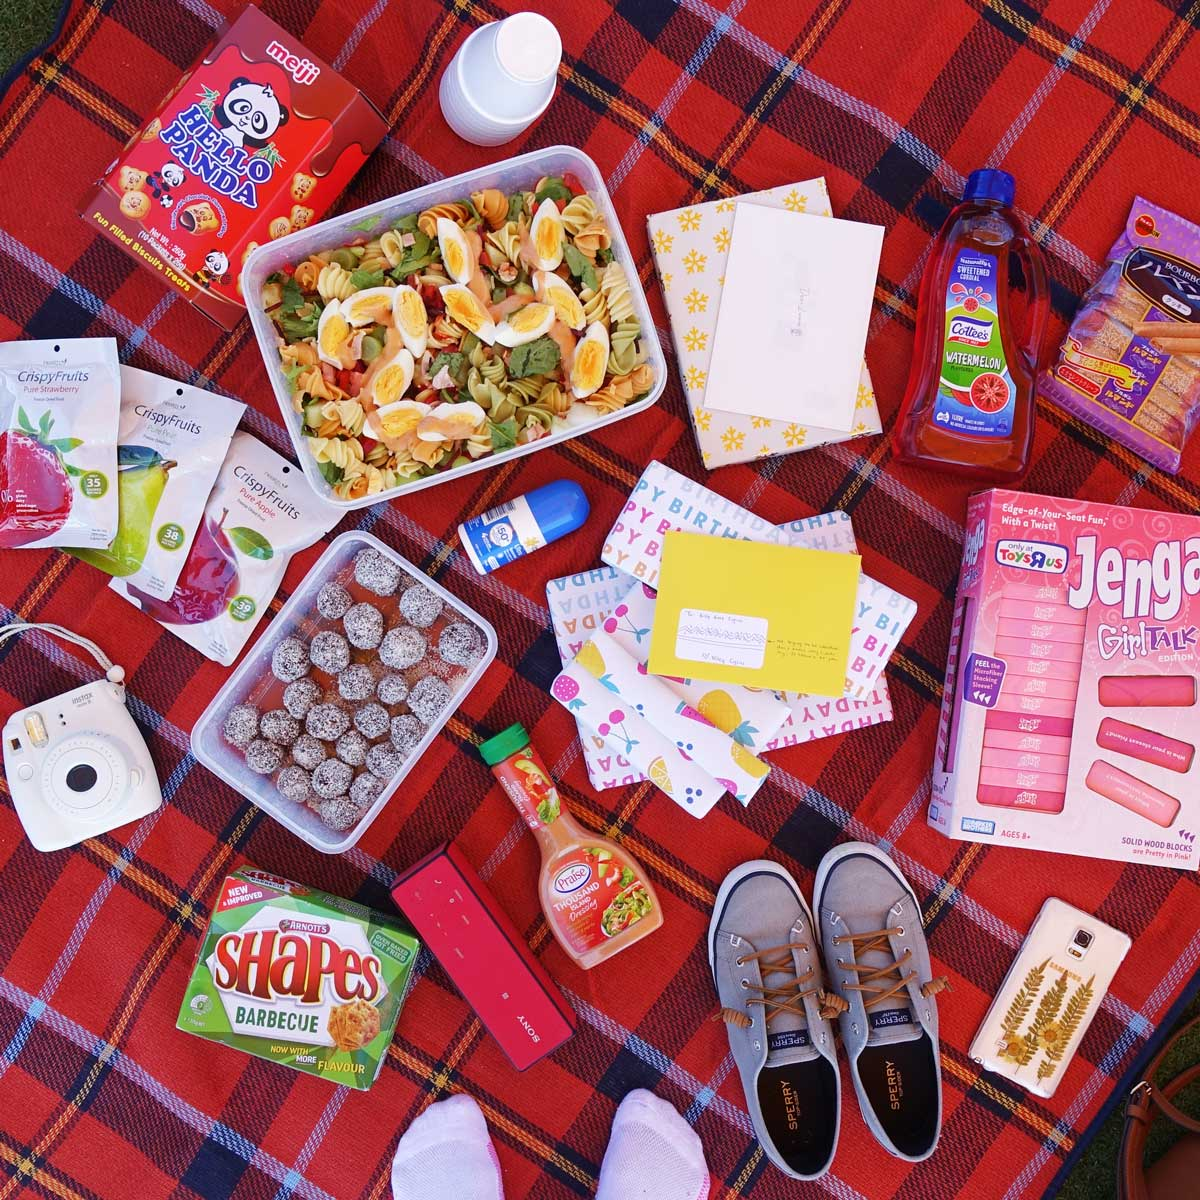 Celebrating my 24th with a picnic!